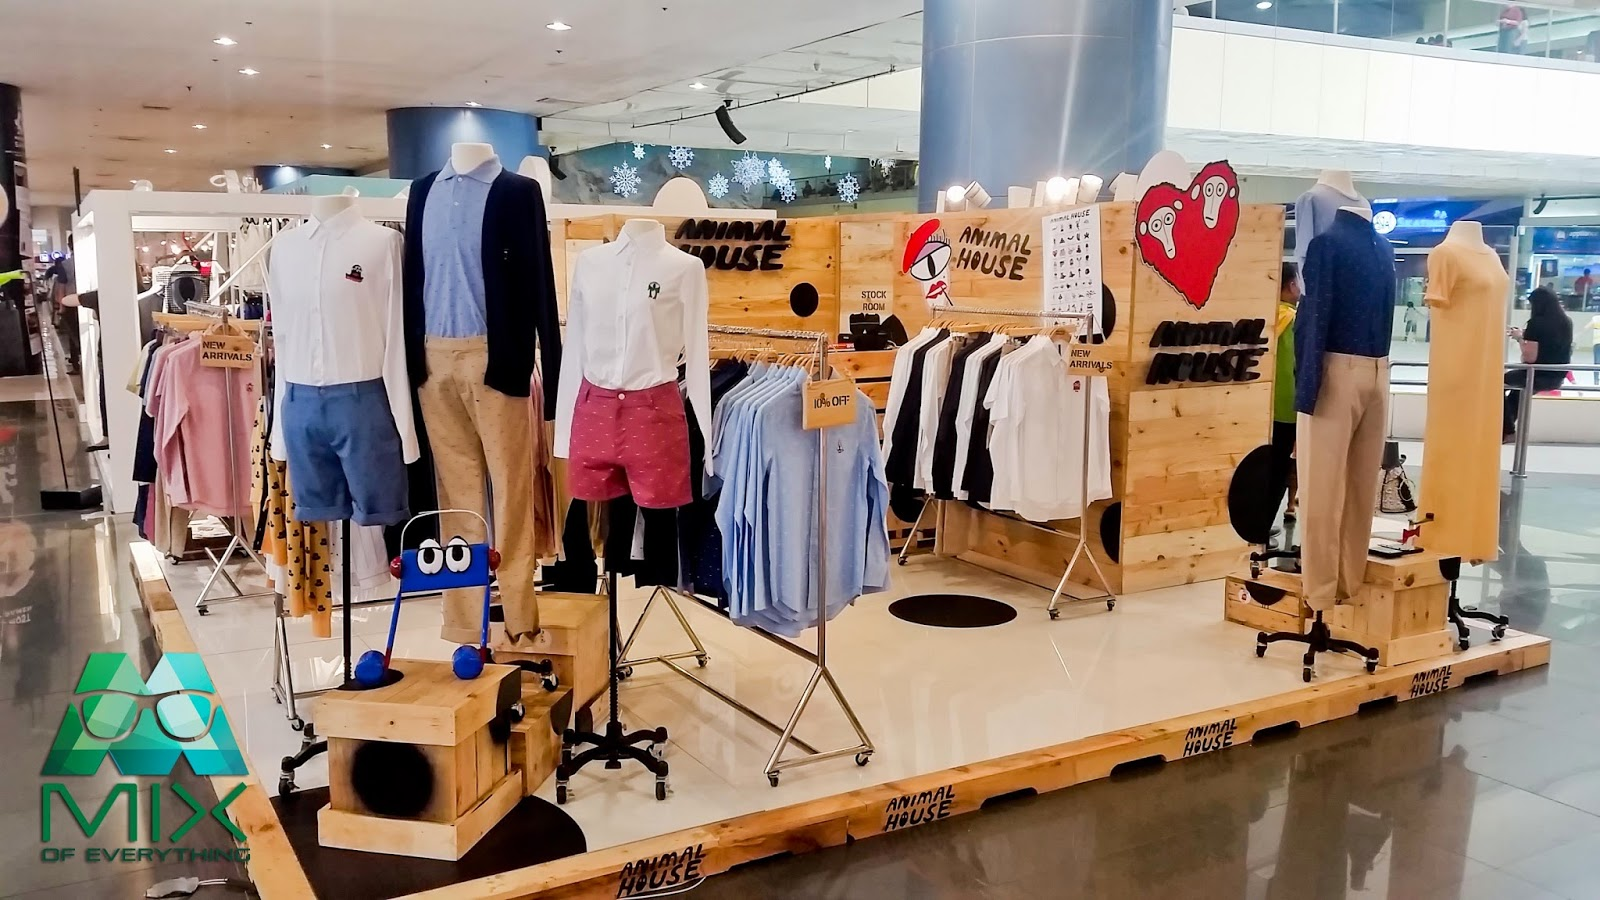 Save fashion pop up store